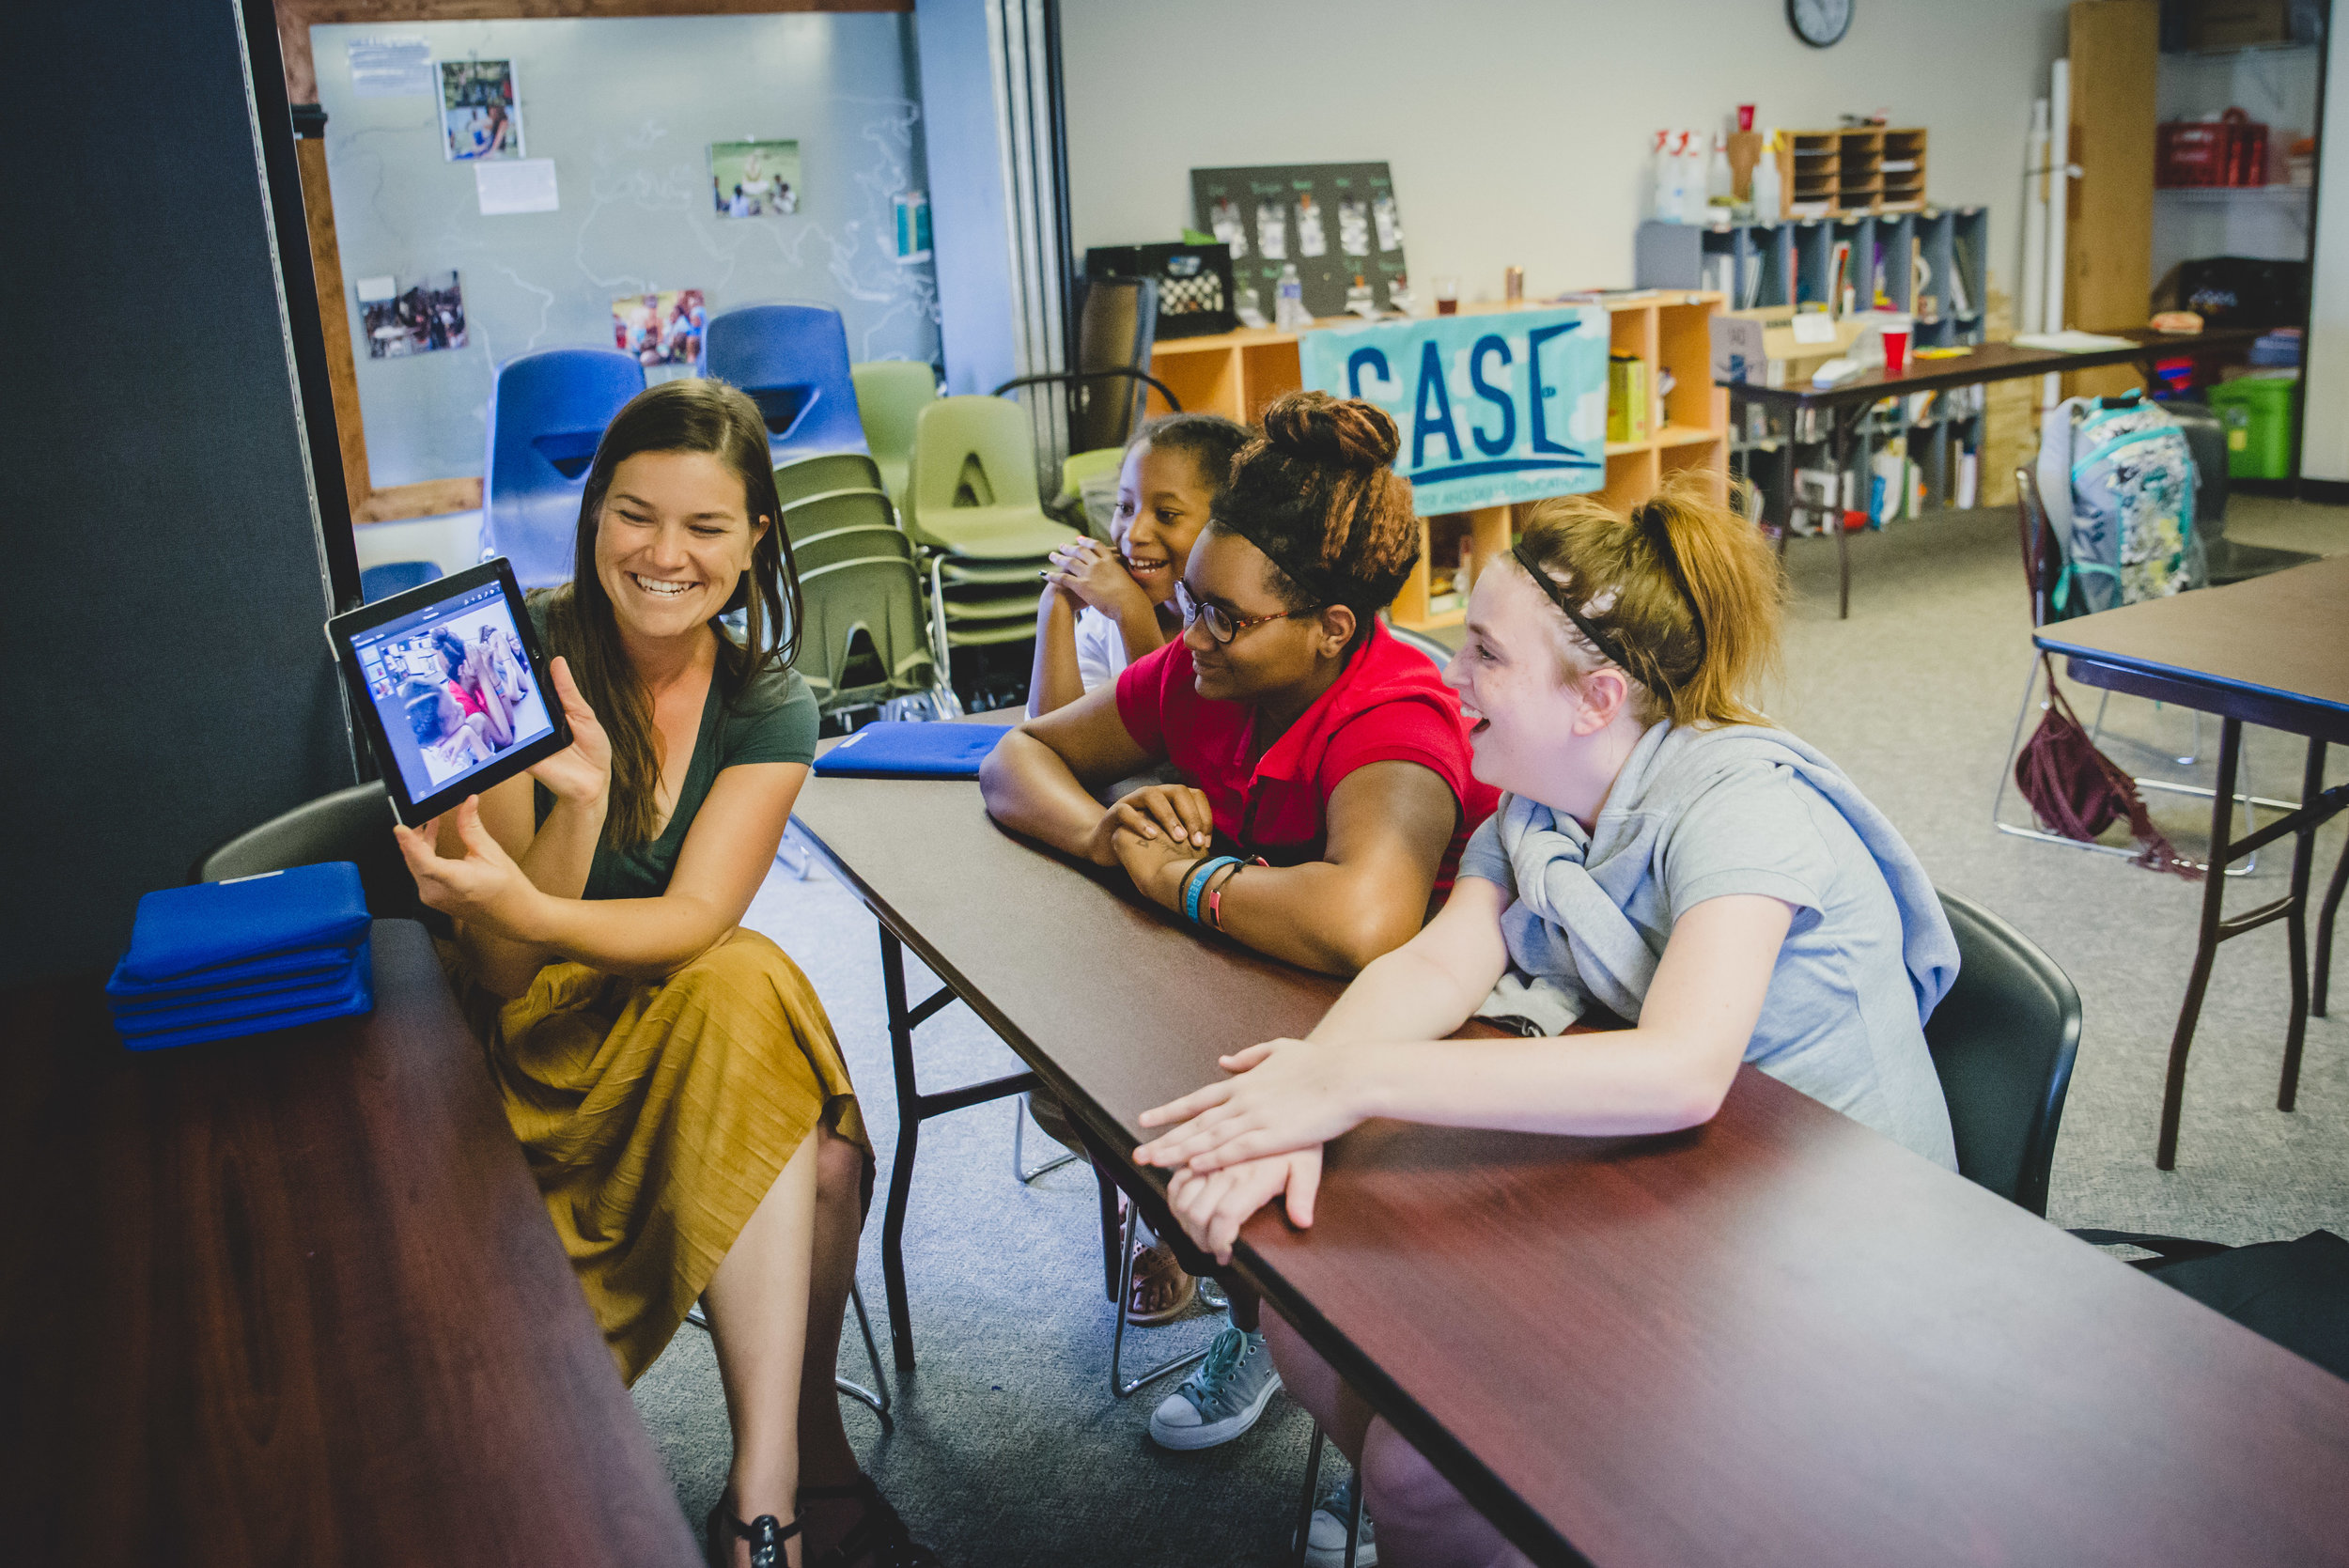 Using iPads, students had the chance to create a keynote presentation, newsletter, and even their own book this year! These projects developed students' capacity for writing, design, and oral presentation.